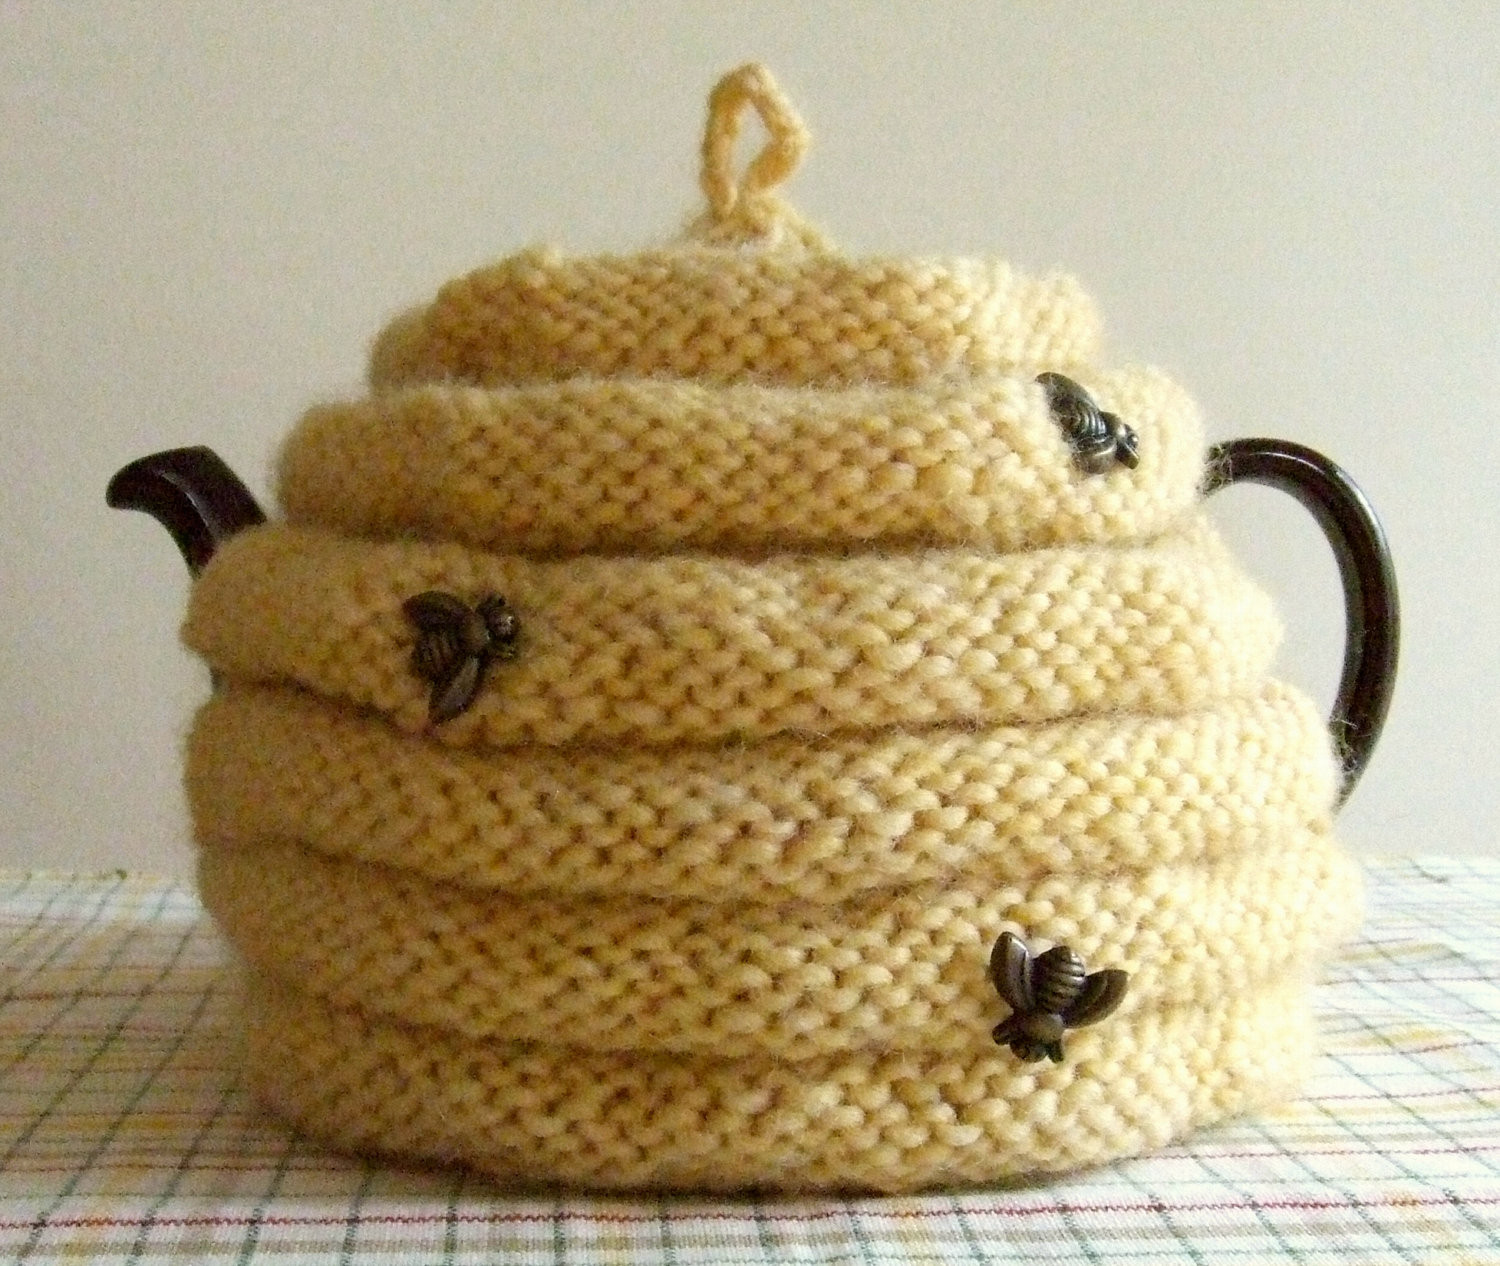 Tea Cosy Patterns Awesome Knitting Pattern Spouted Beehive Tea Cozy Knit Tea Cozy Of Innovative 44 Models Tea Cosy Patterns